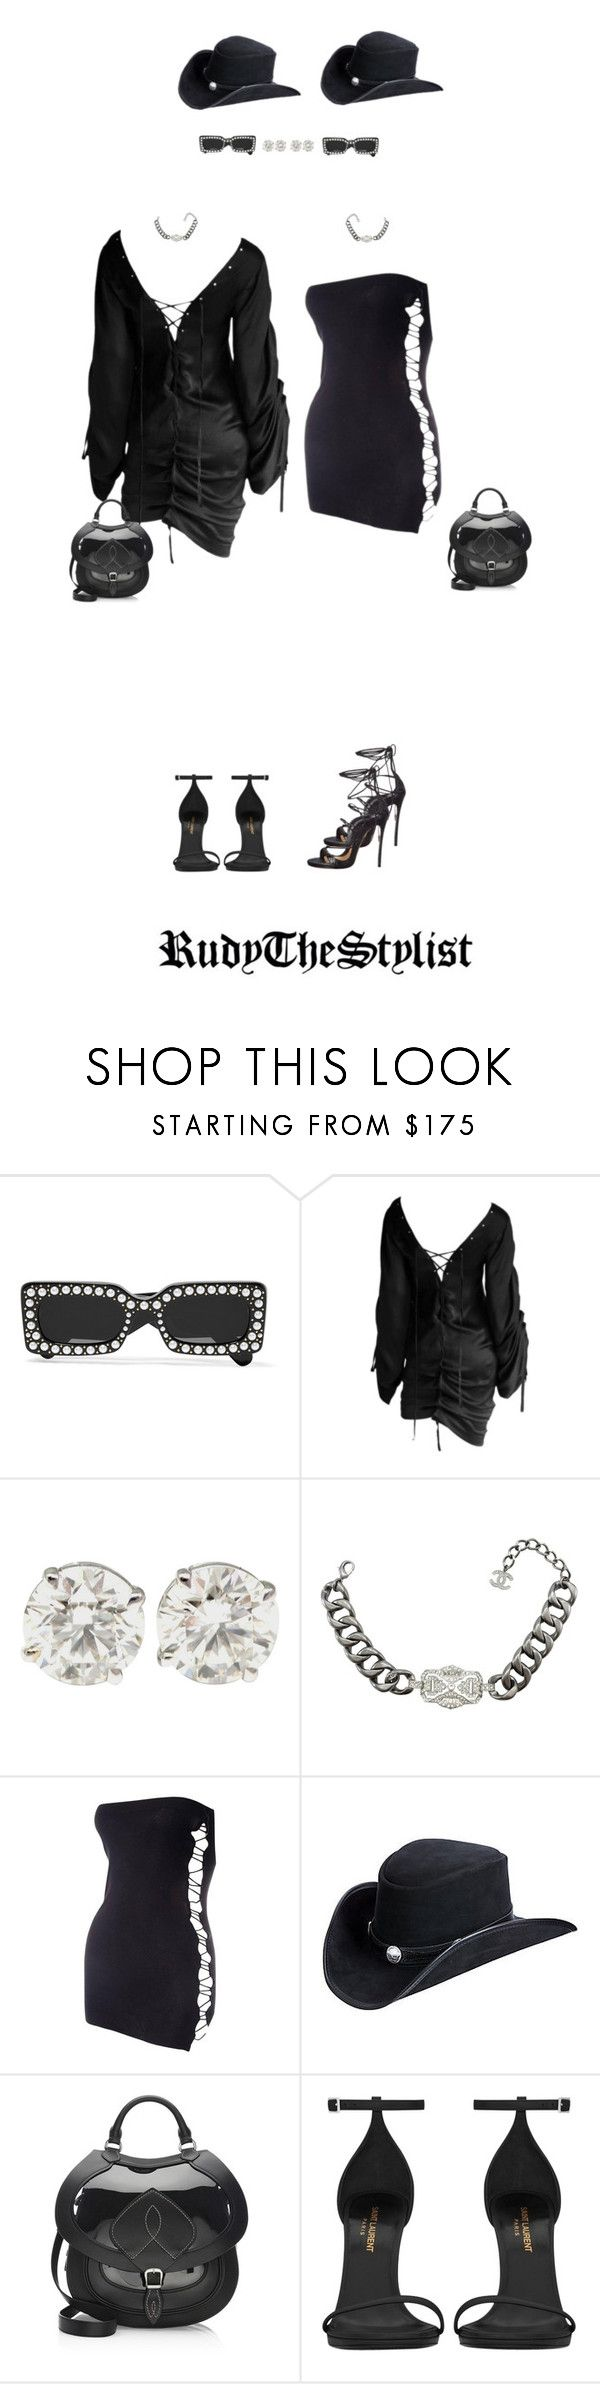 """""""Clearmont twins"""" by rudythestylist ❤ liked on Polyvore featuring Gucci, Tom Ford, Chanel, Jean-Paul Gaultier, Overland Sheepskin Co., Maison Margiela, Yves Saint Laurent and Dsquared2"""